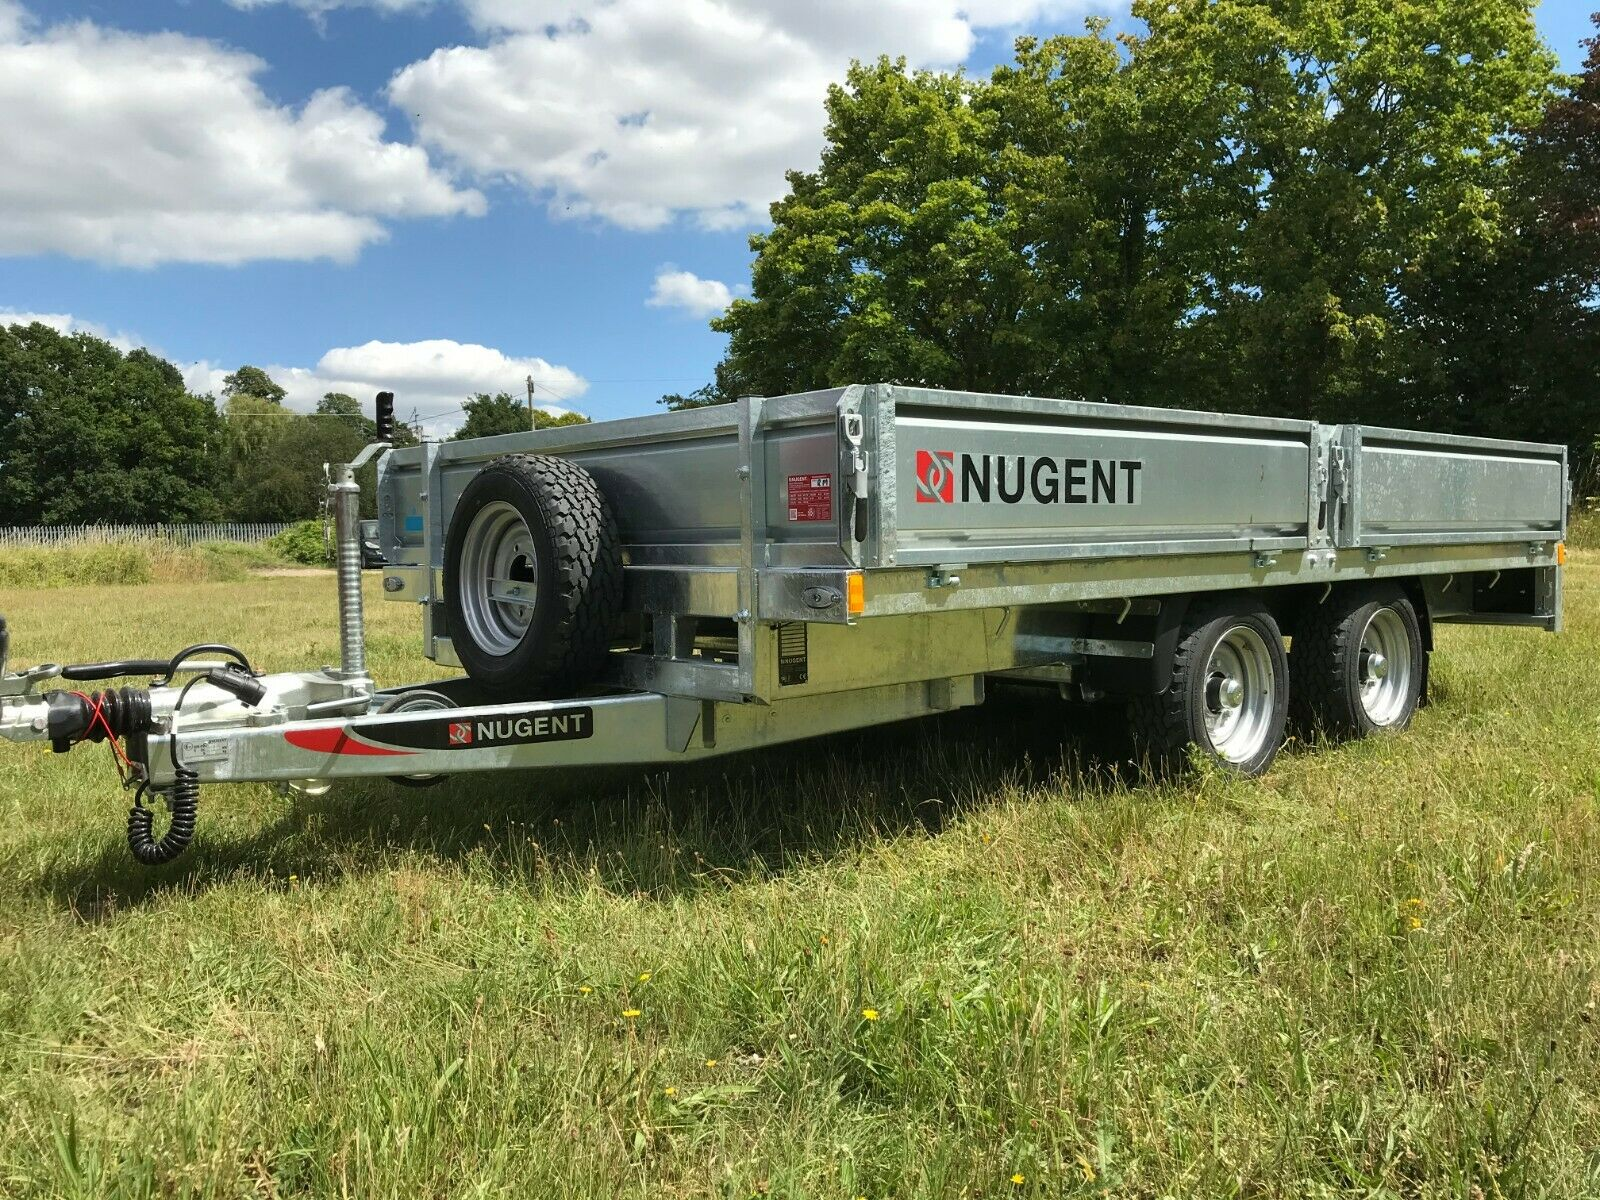 NUGENT F3720H 12'2 x 6'7 FLAT BED TRAILER - IN STOCK!!